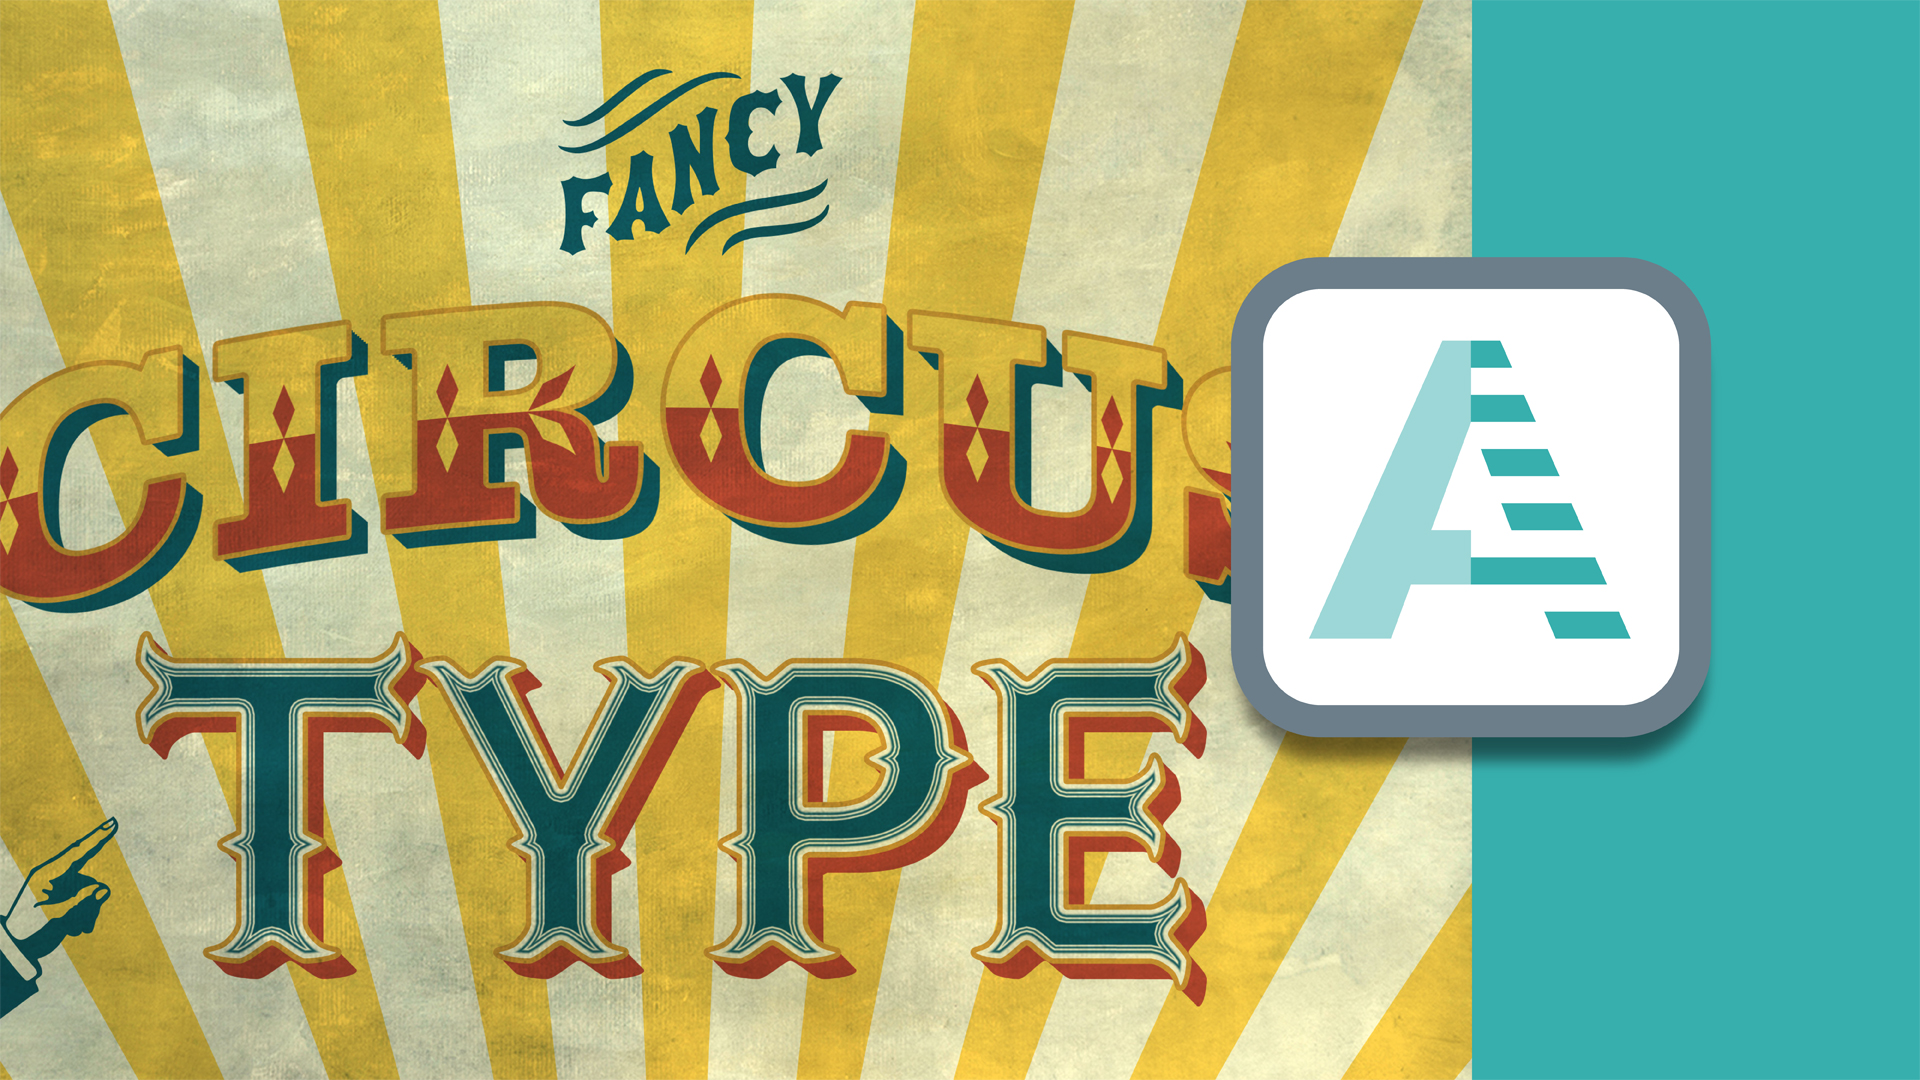 Create Psychedelic Type part 1: Photoshop for Designers: Type Effects